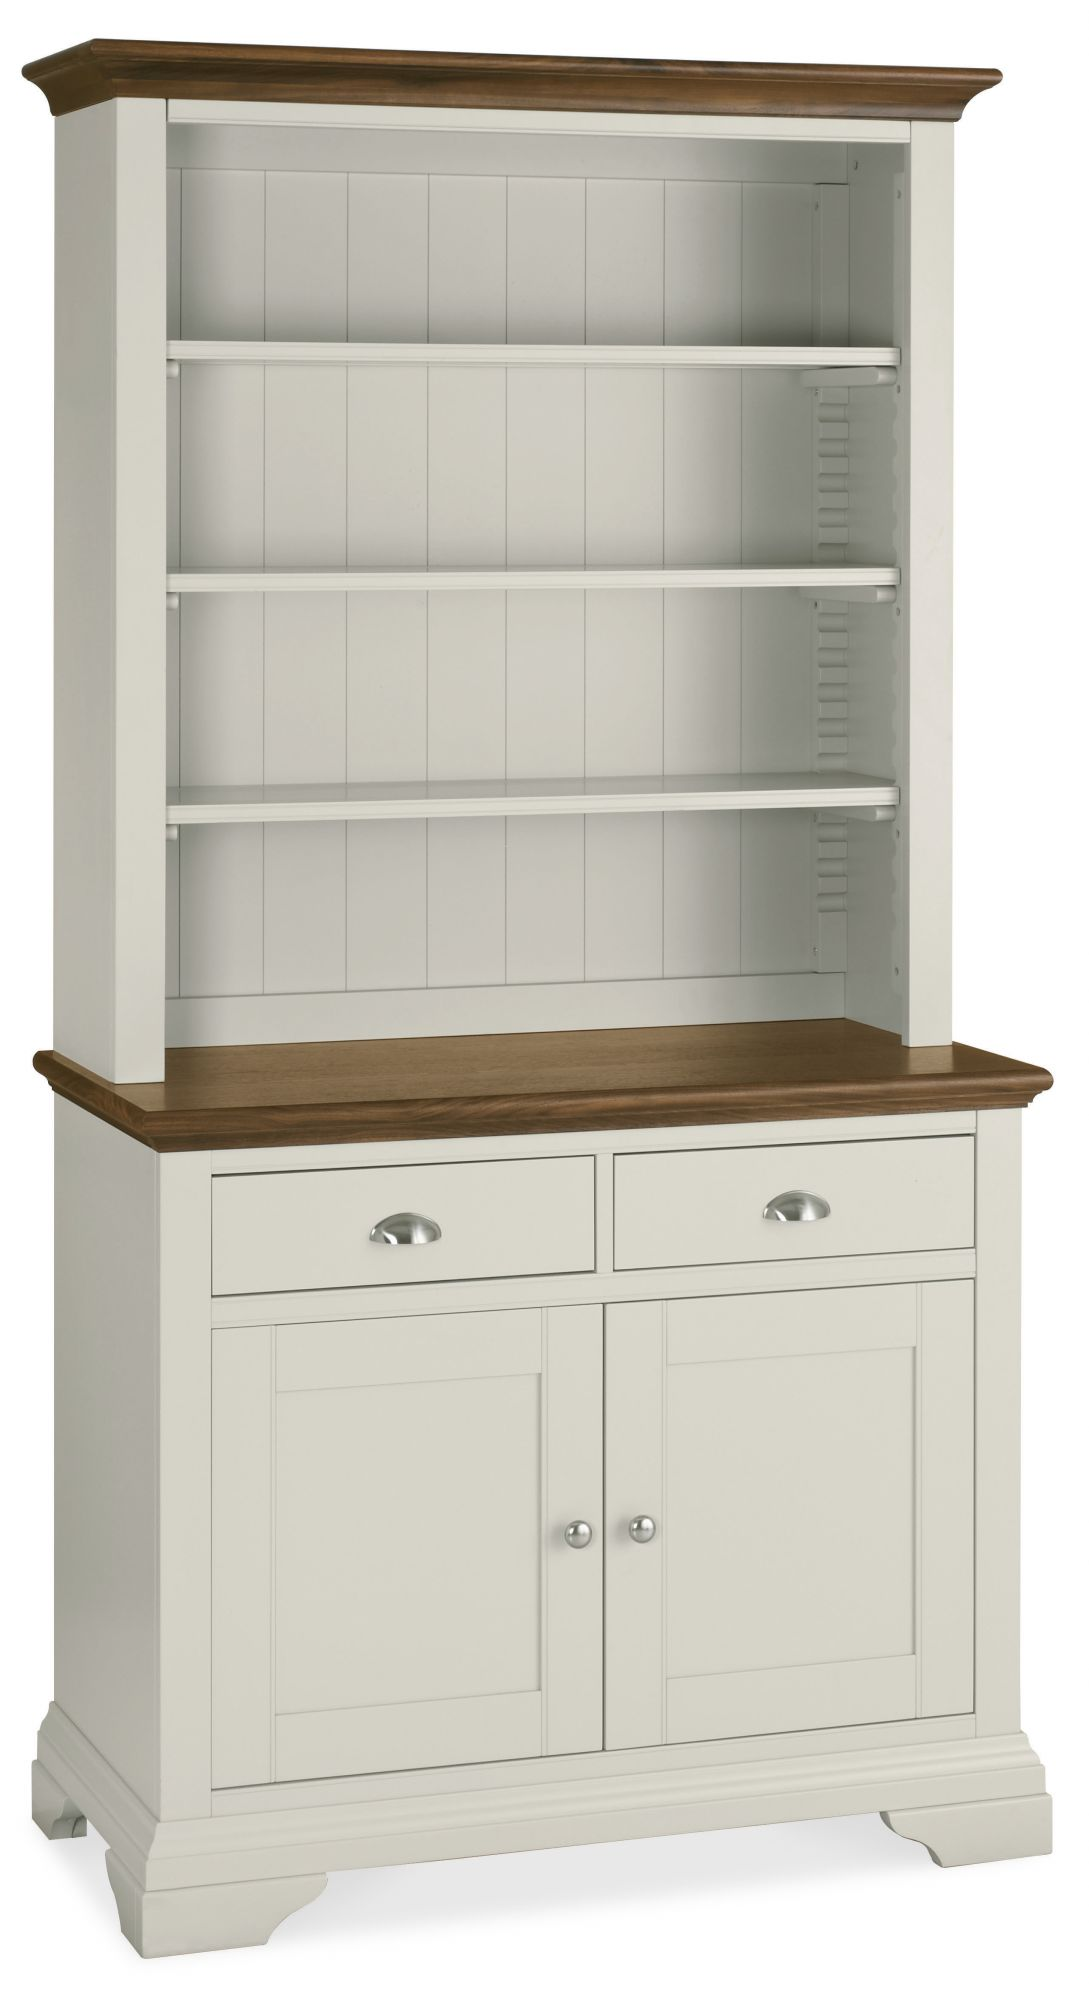 https://www.firstfurniture.co.uk/pub/media/catalog/product/8/0/8008-27-C1.jpg